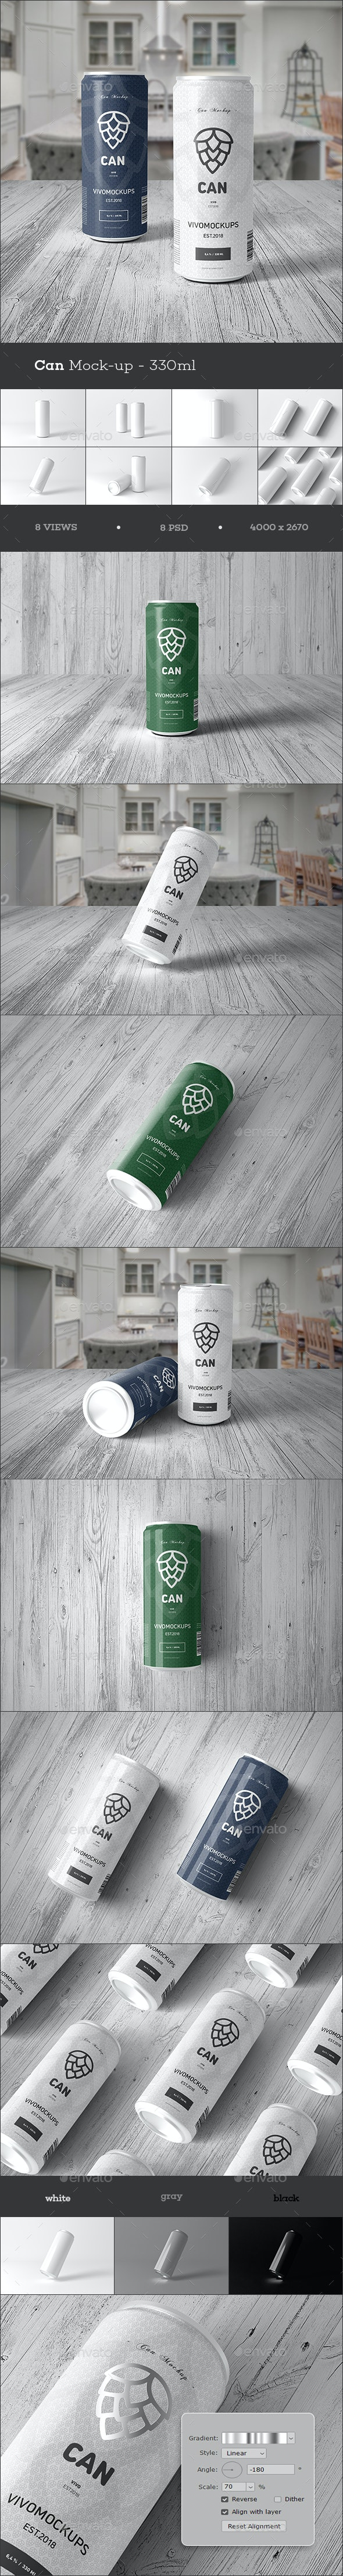 Can Mockup 330ml - Food and Drink Packaging